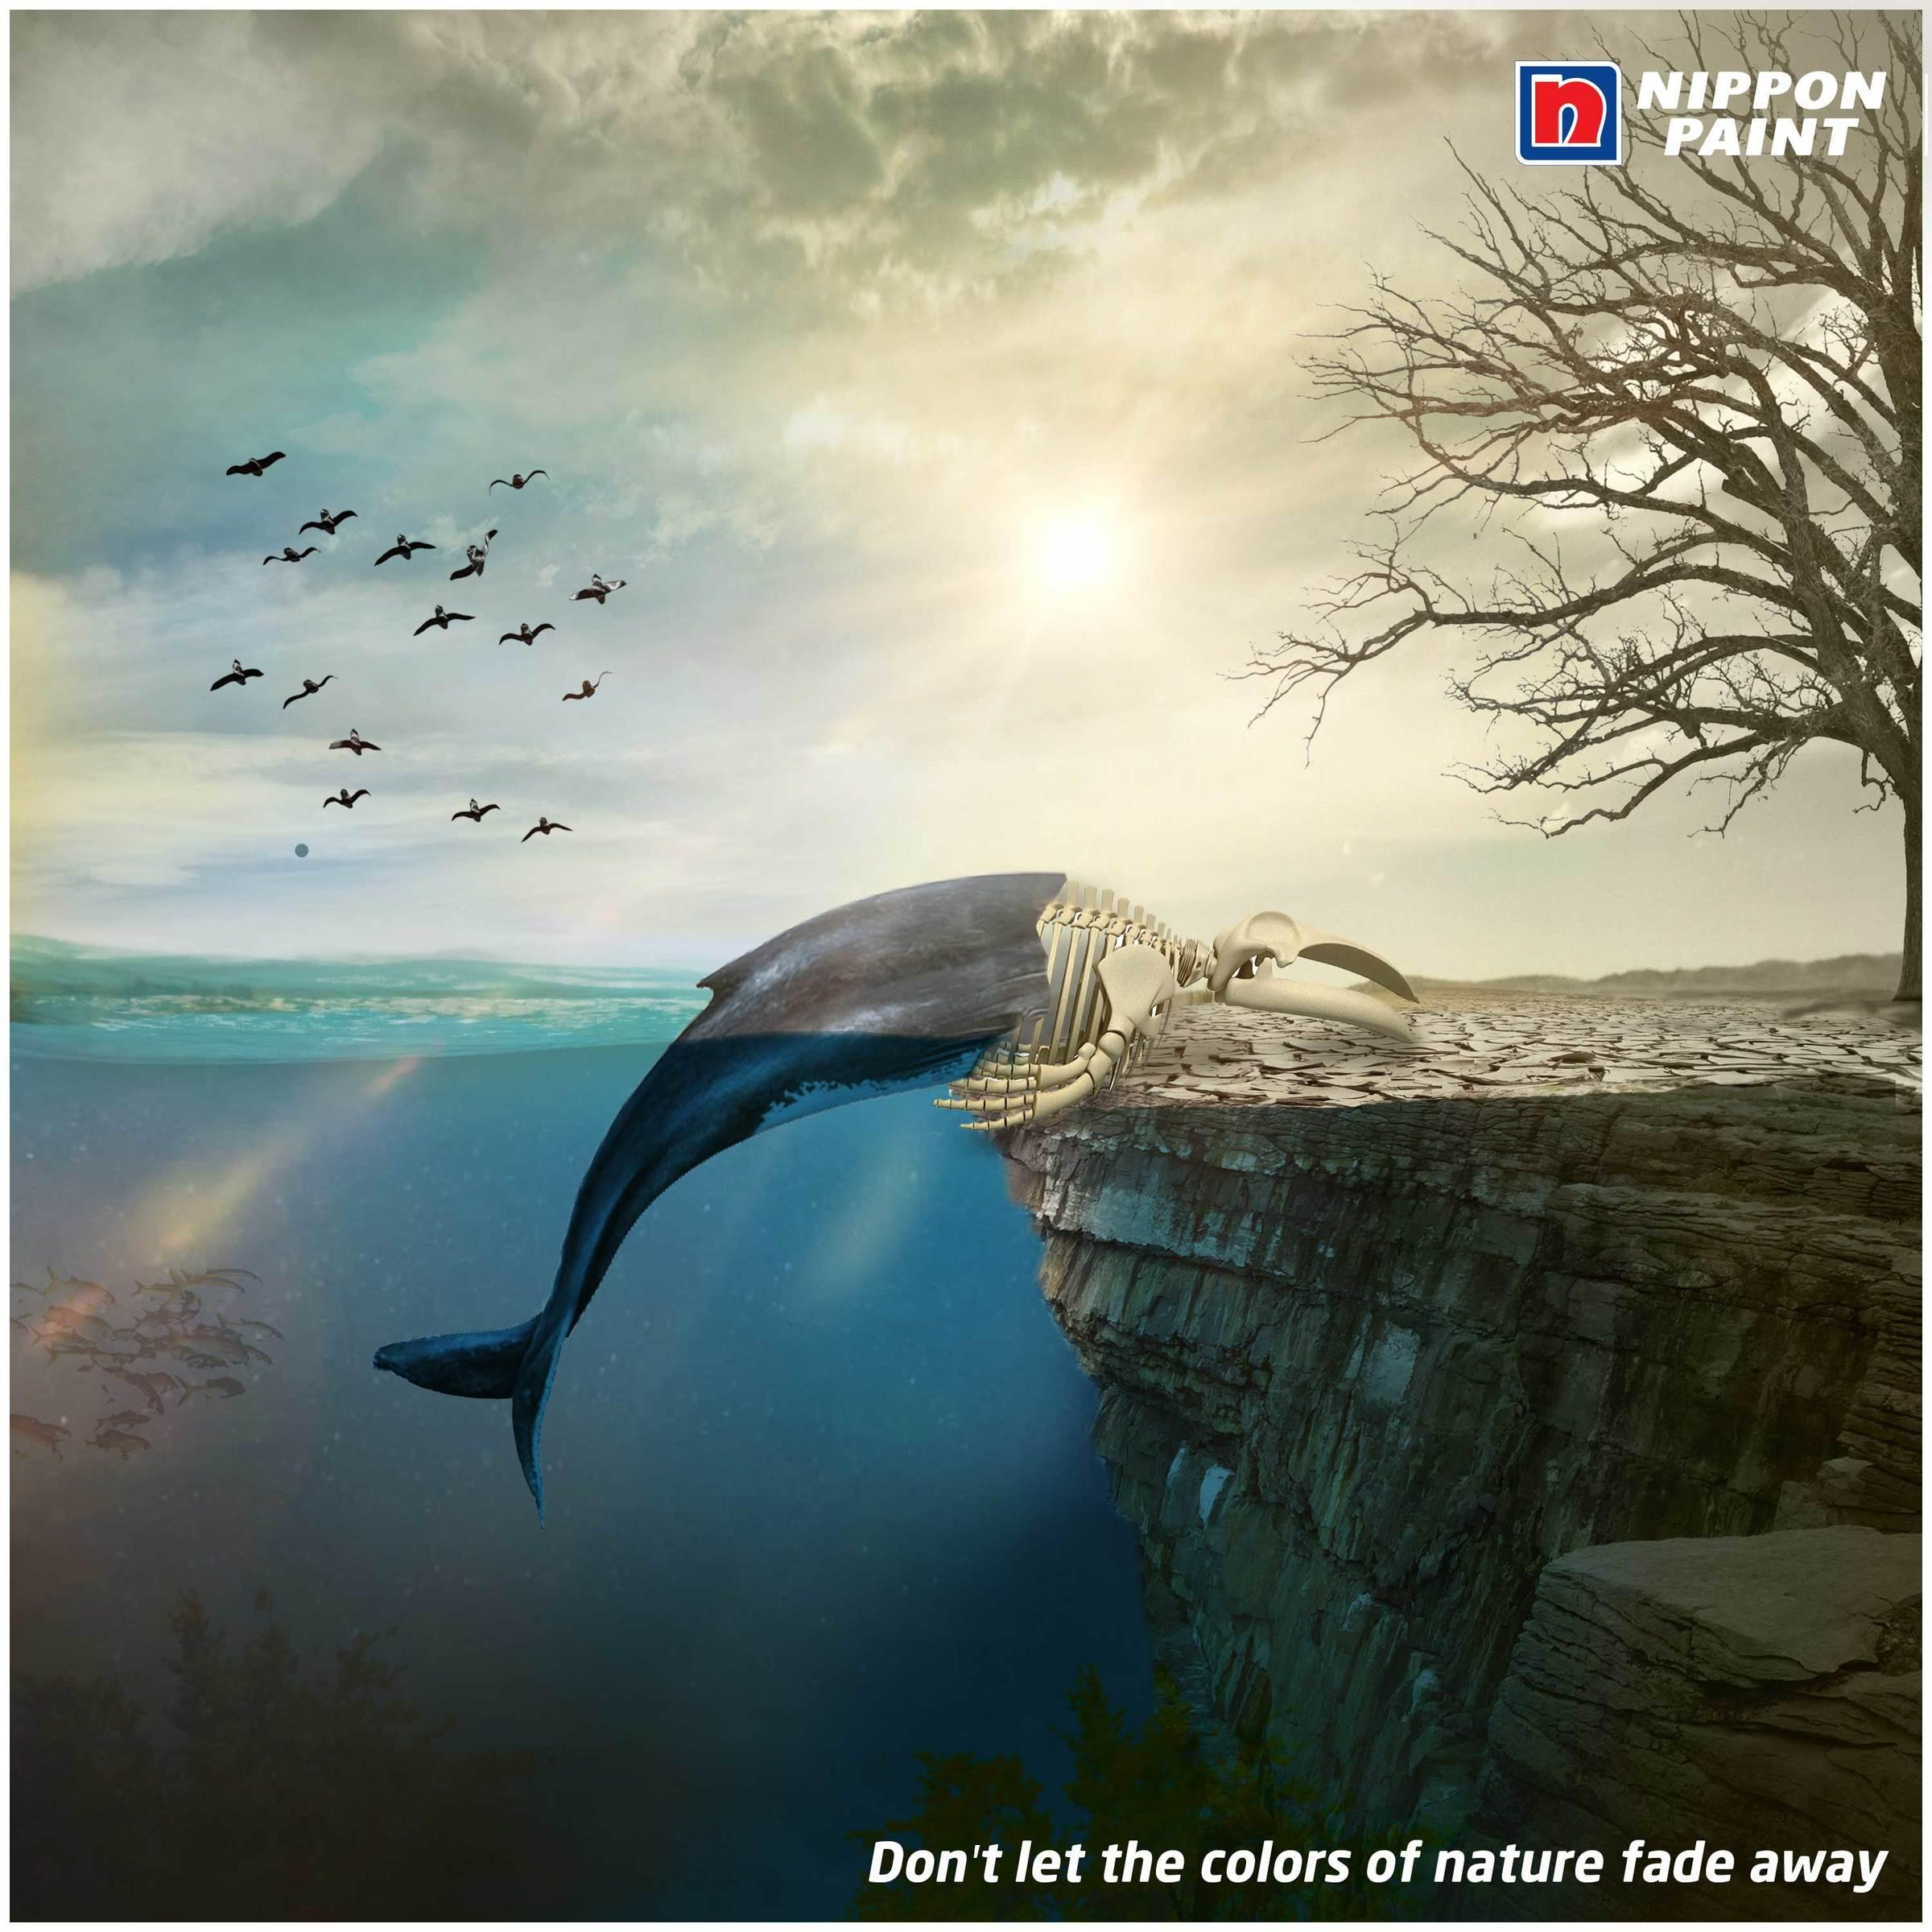 Nippon Paint: Don't Let Colors of Nature Fade Away